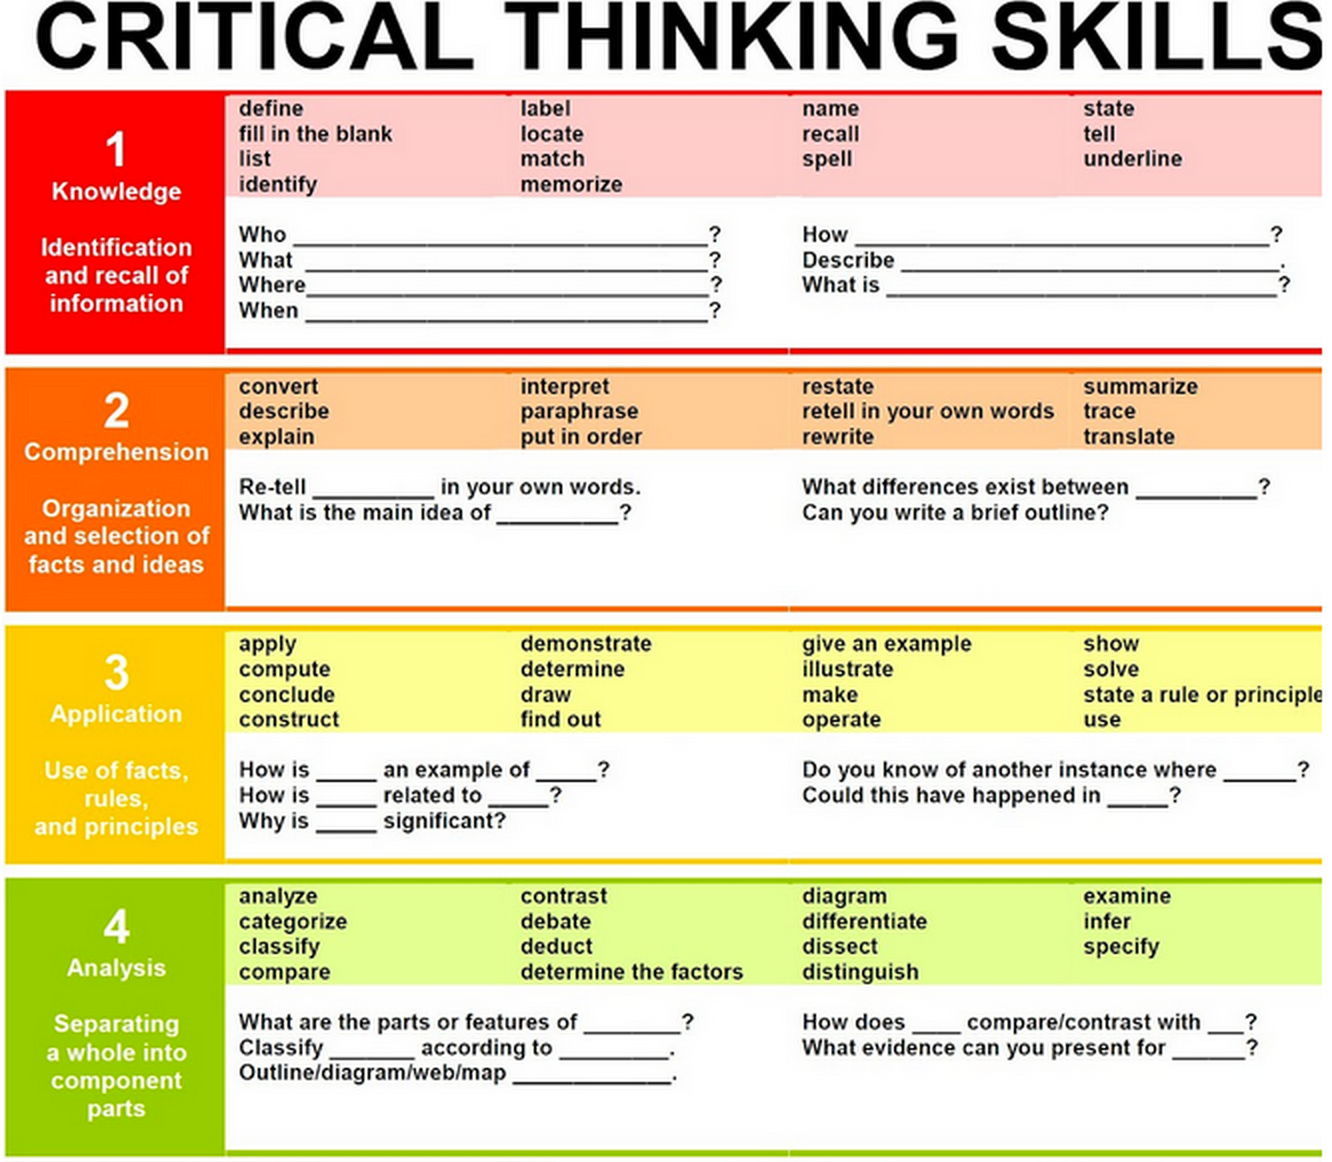 critical thinking skills for students ppt The point is that tailoring lessons specifically to the interests of your students can go quite far in encouraging student engagement, an element that is essential to the development of critical thinking.